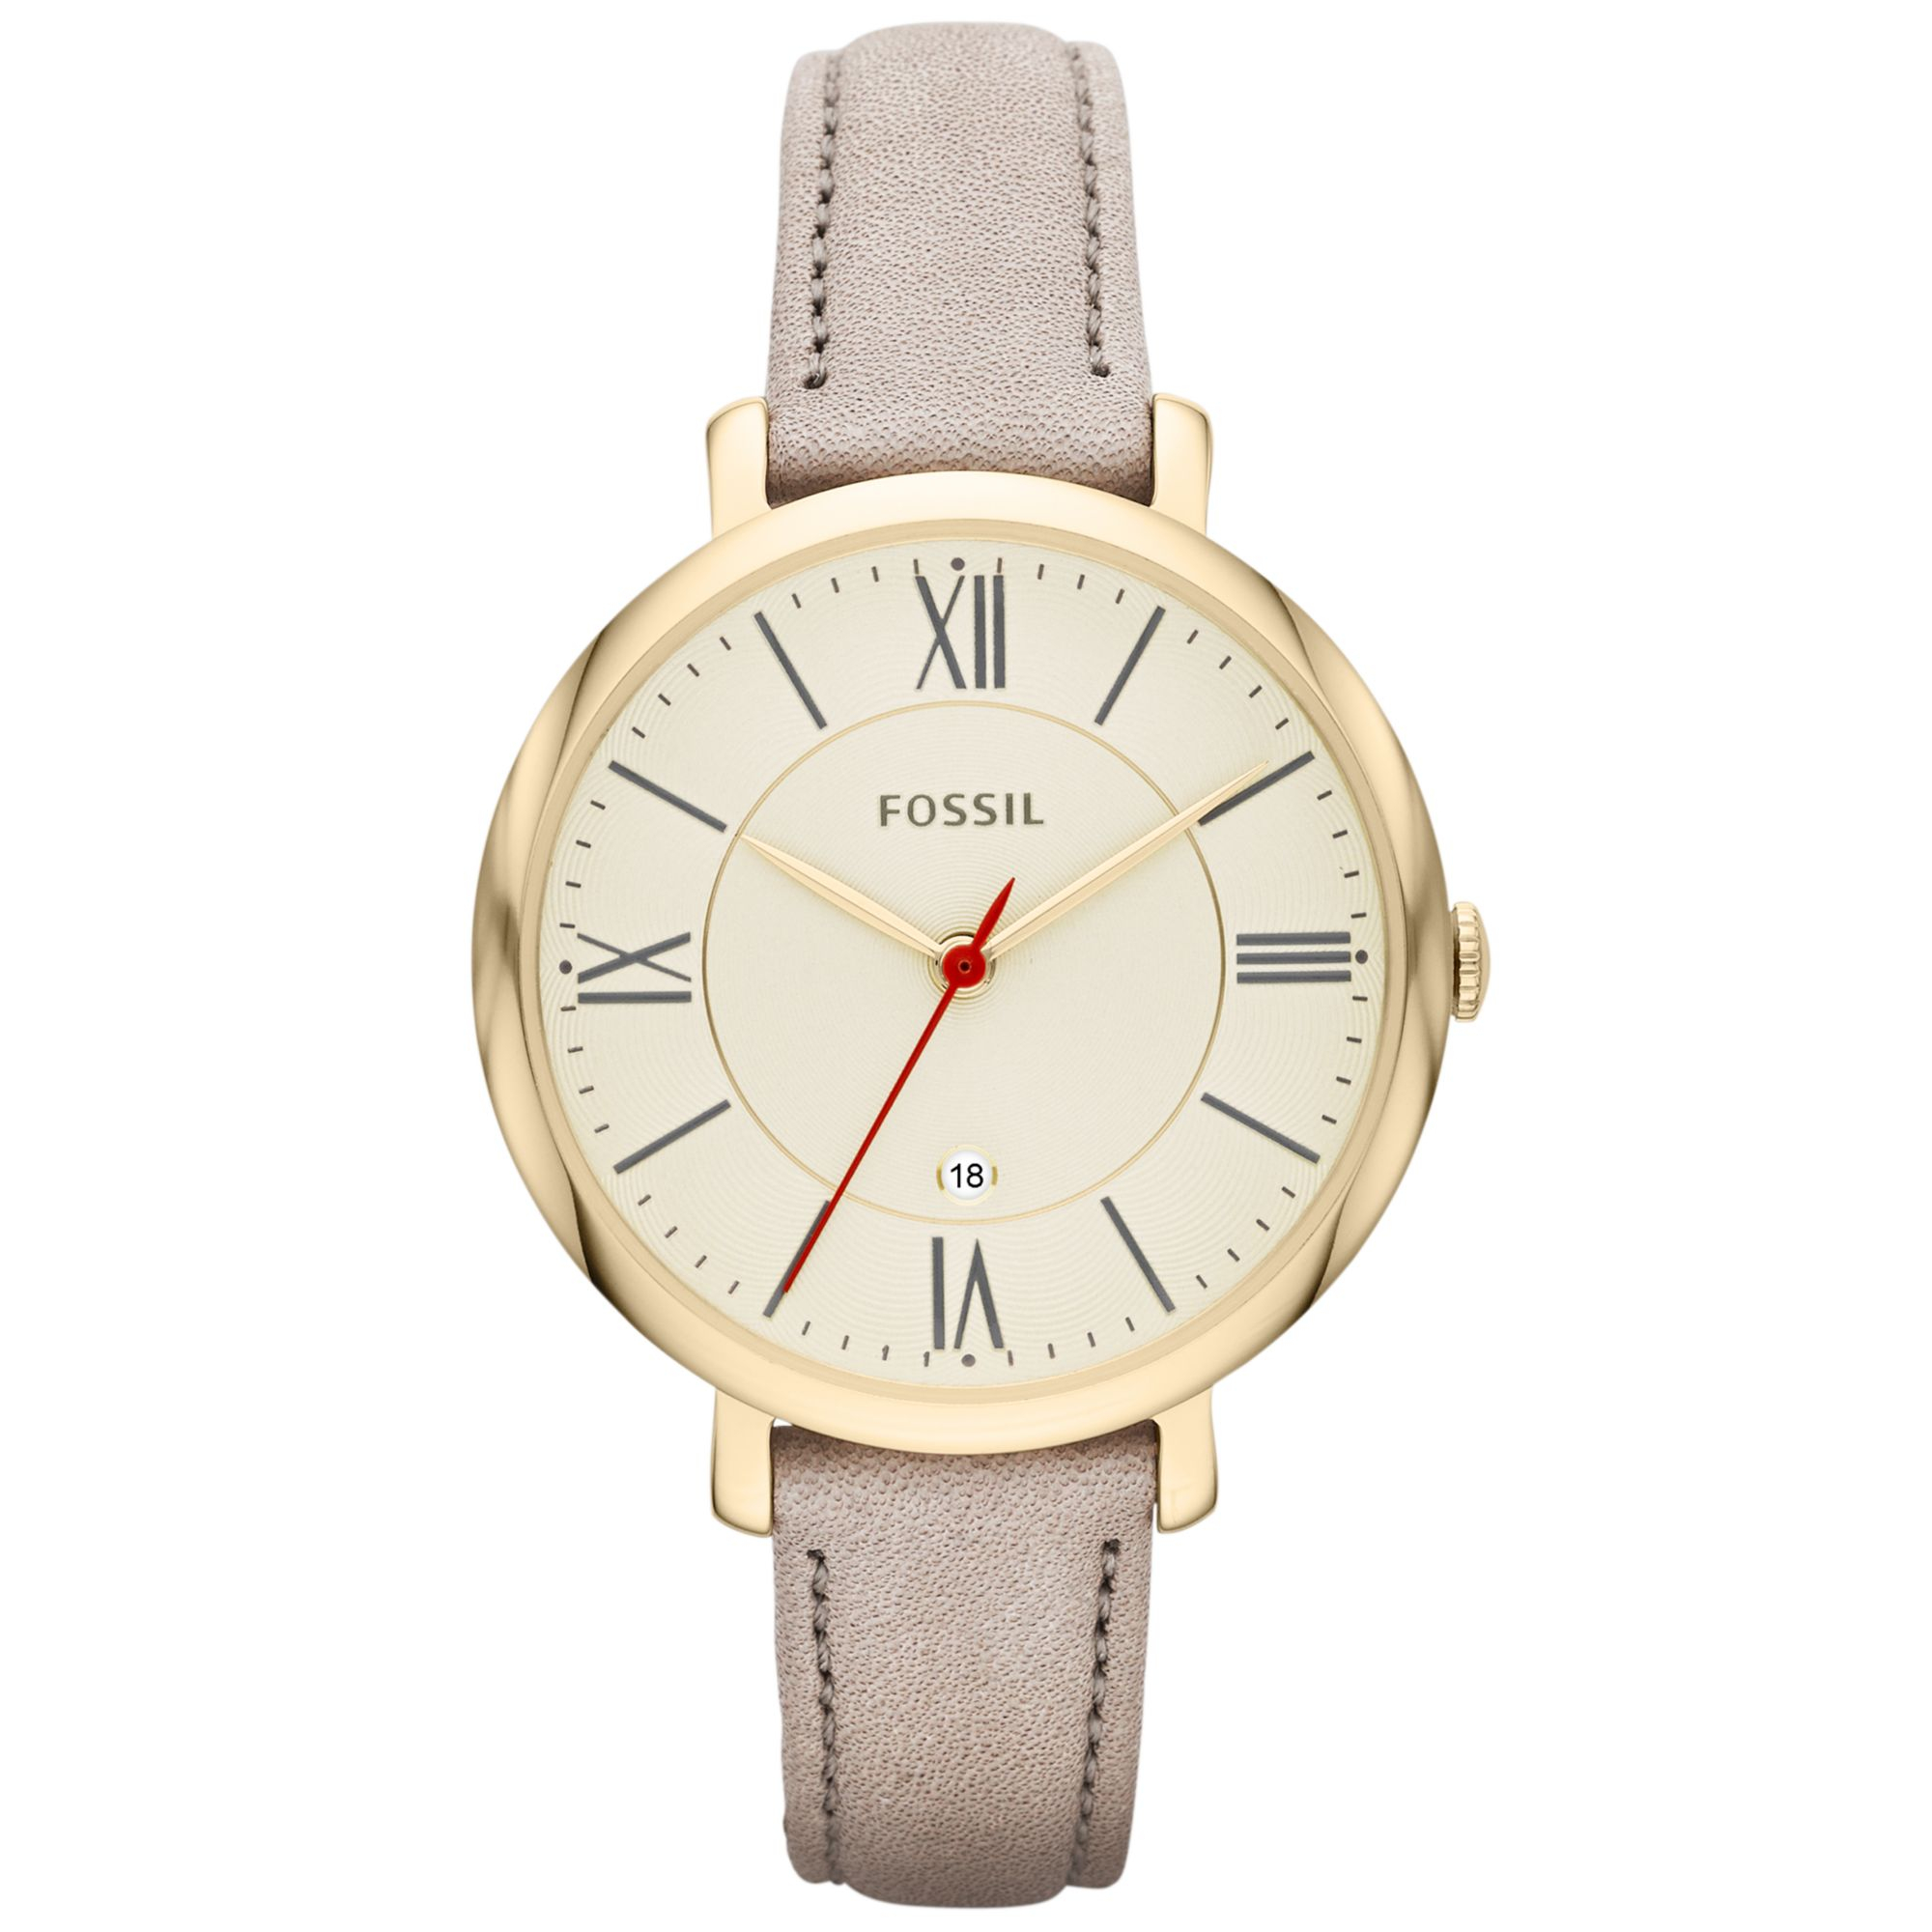 Lyst - Fossil Womens Jacqueline Gray Leather Strap Watch ...